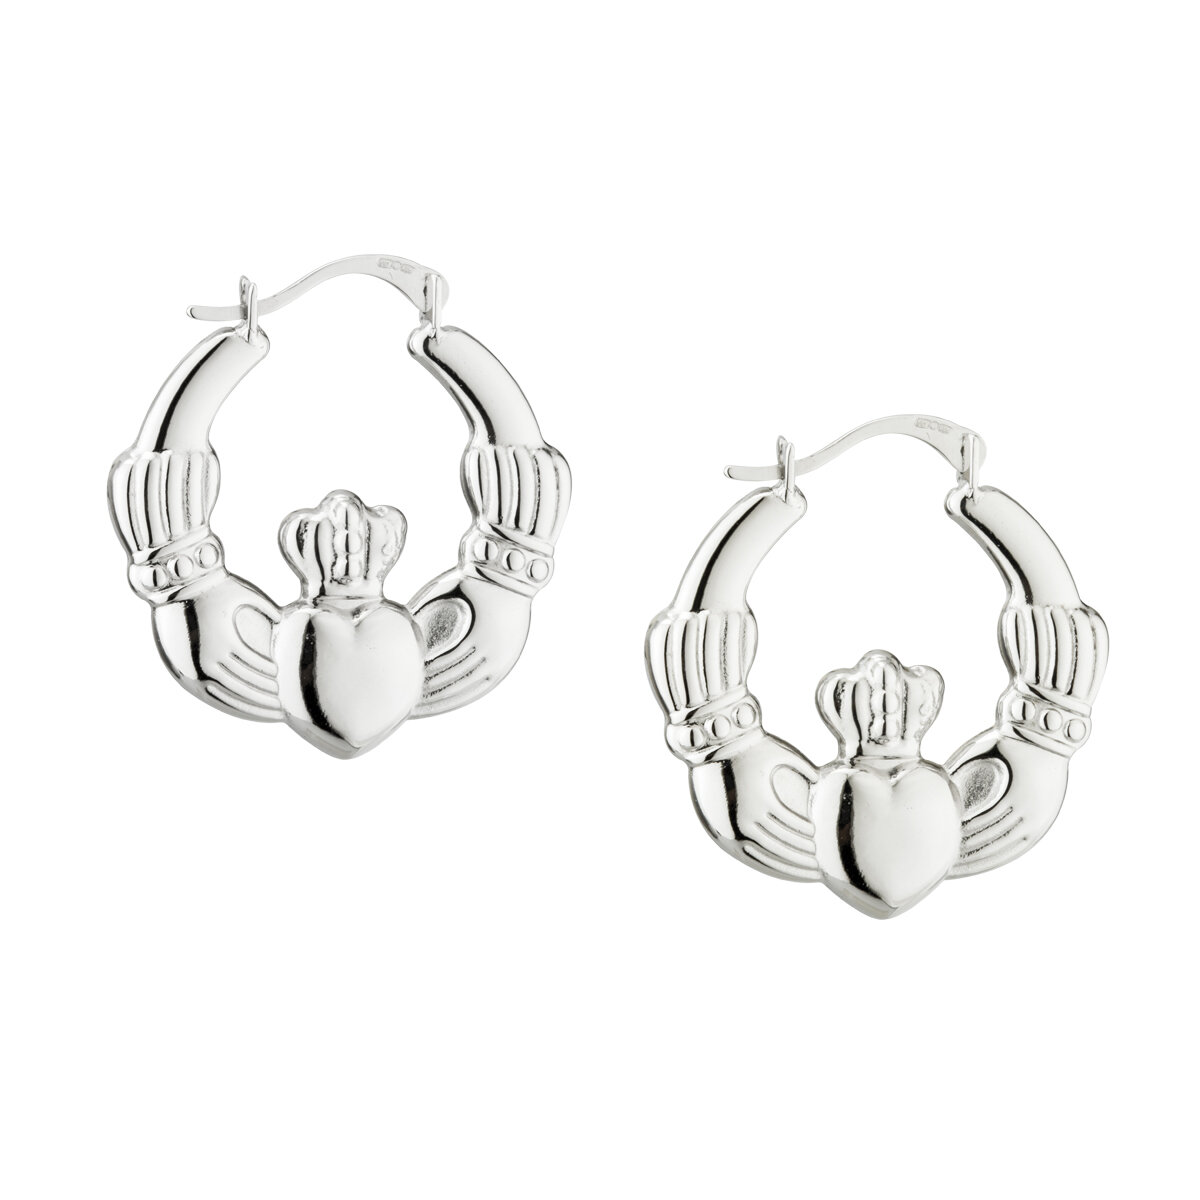 sterling silver claddagh creole medium earrings s3526 from Solvar